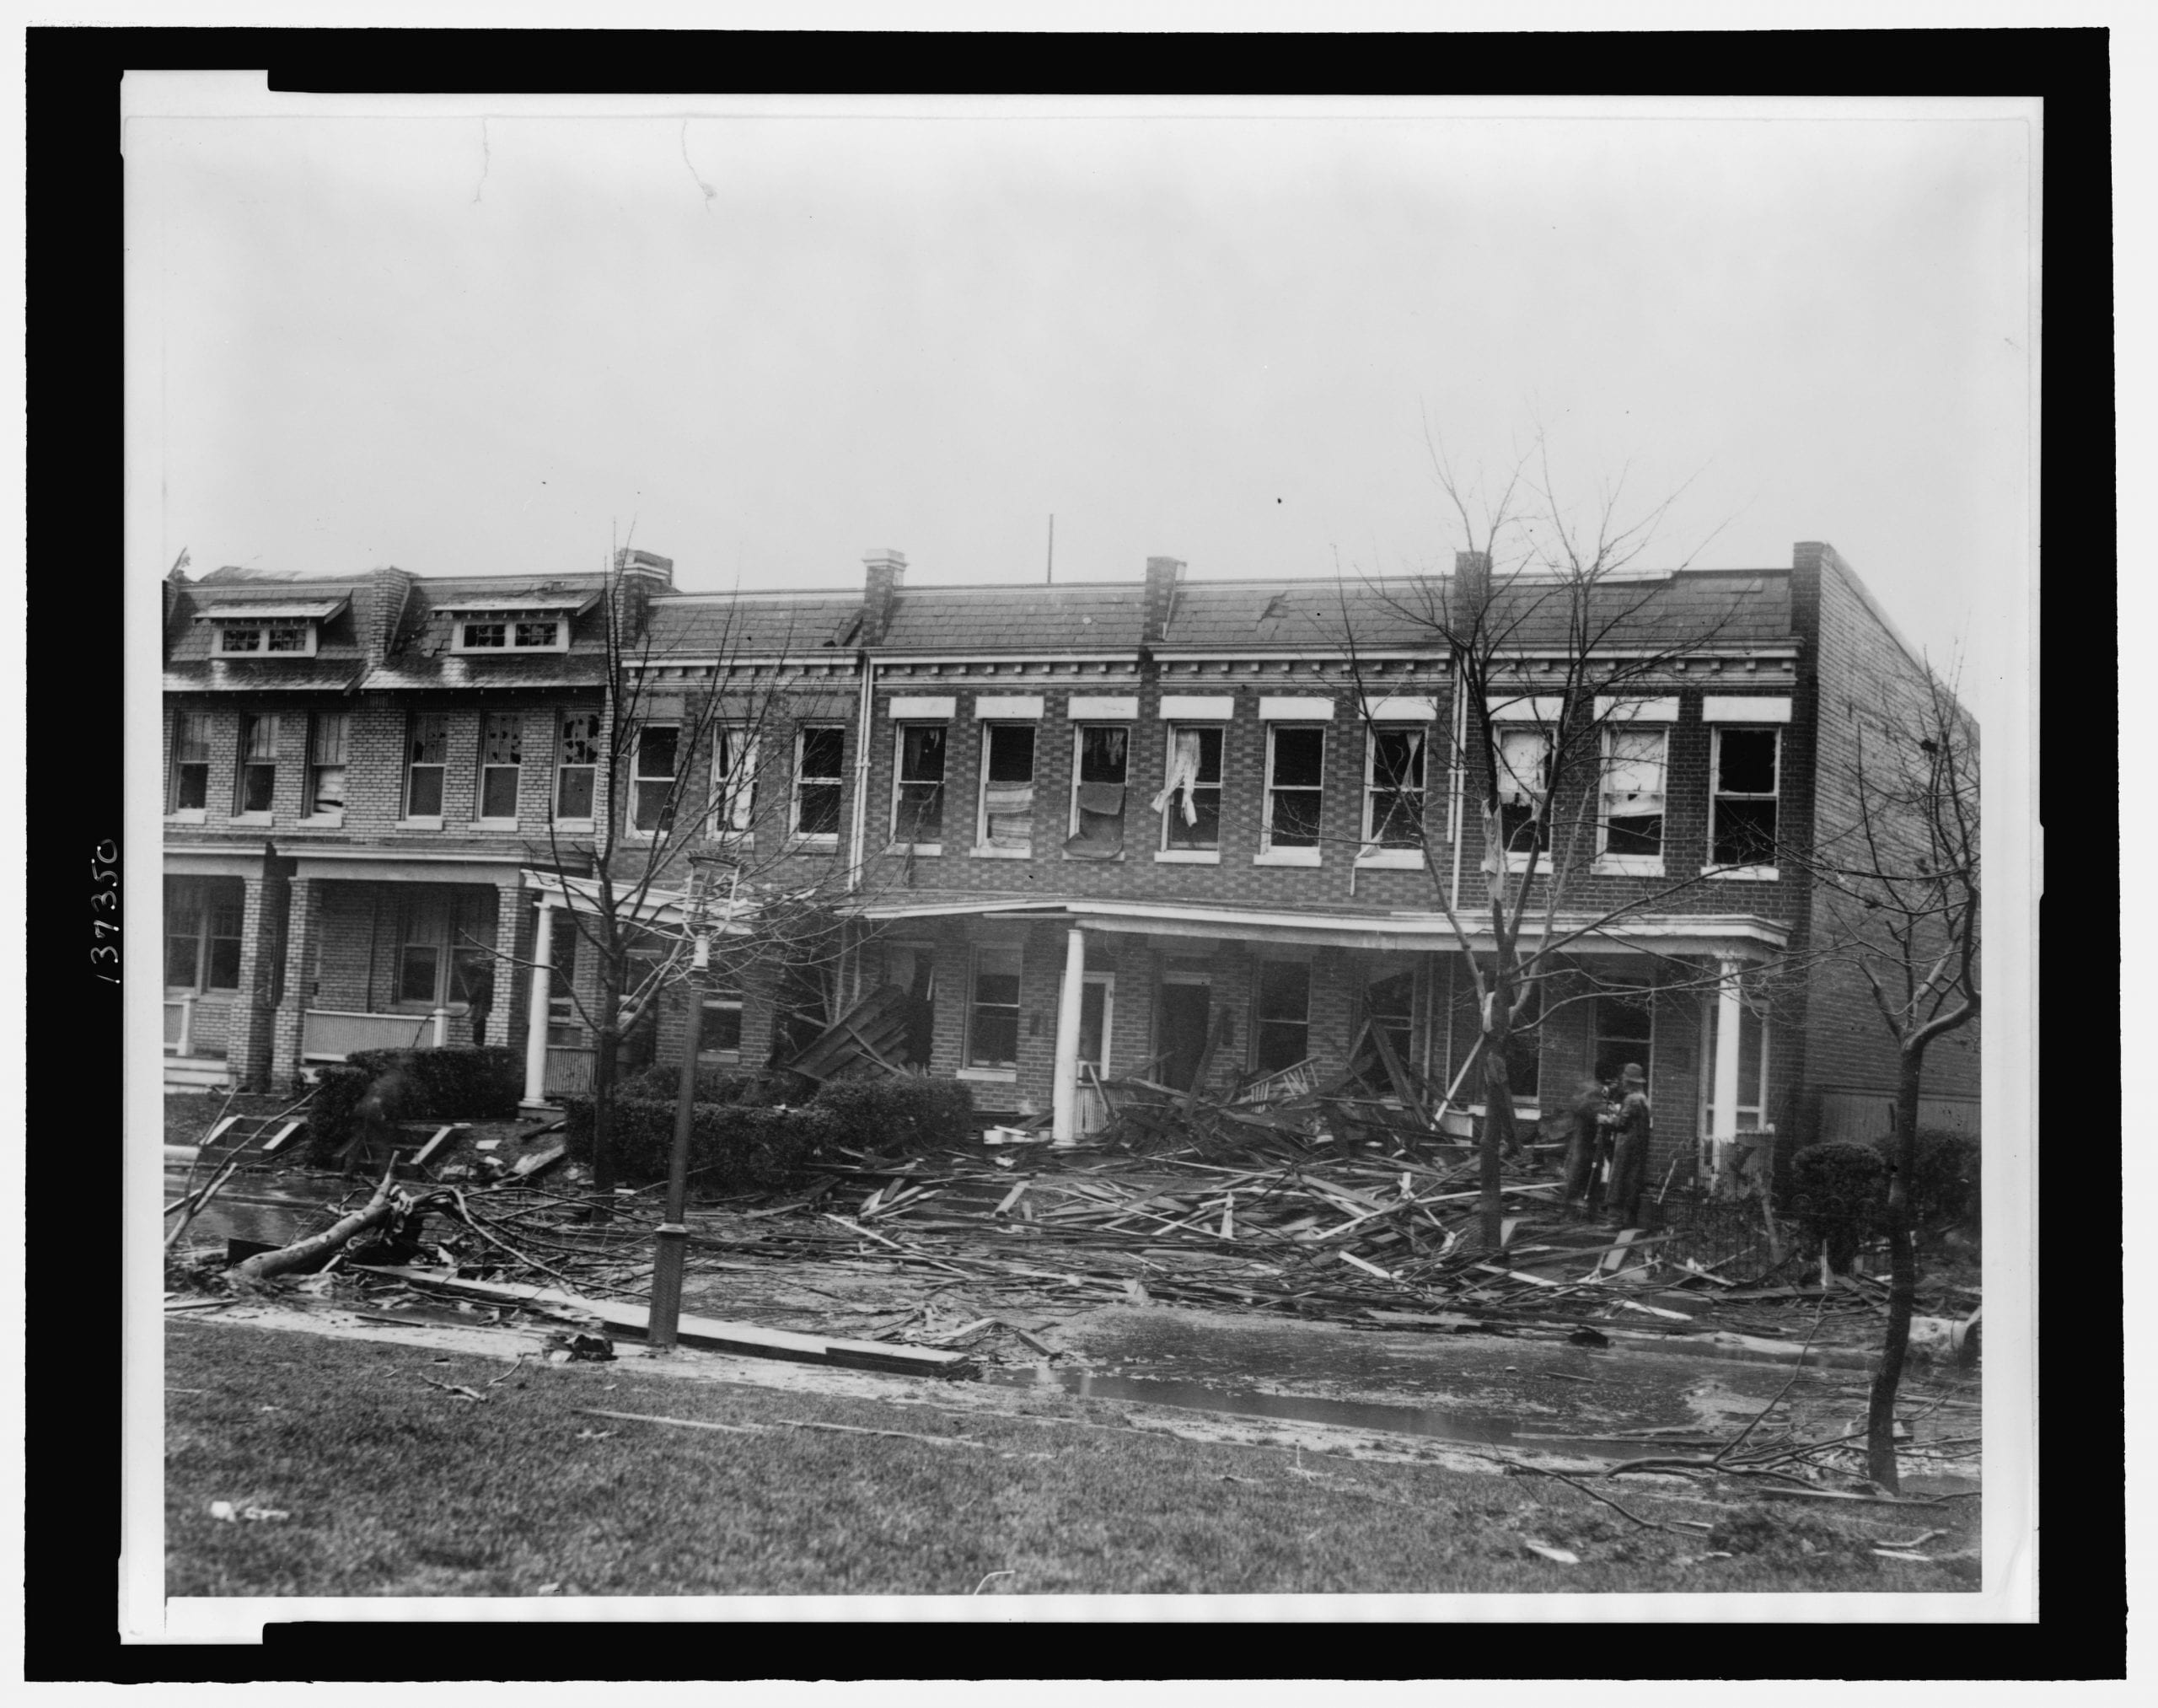 Row houses at 1216 - 1226 C St. SE, severely damaged by a tornado on Nov. 17, 1927